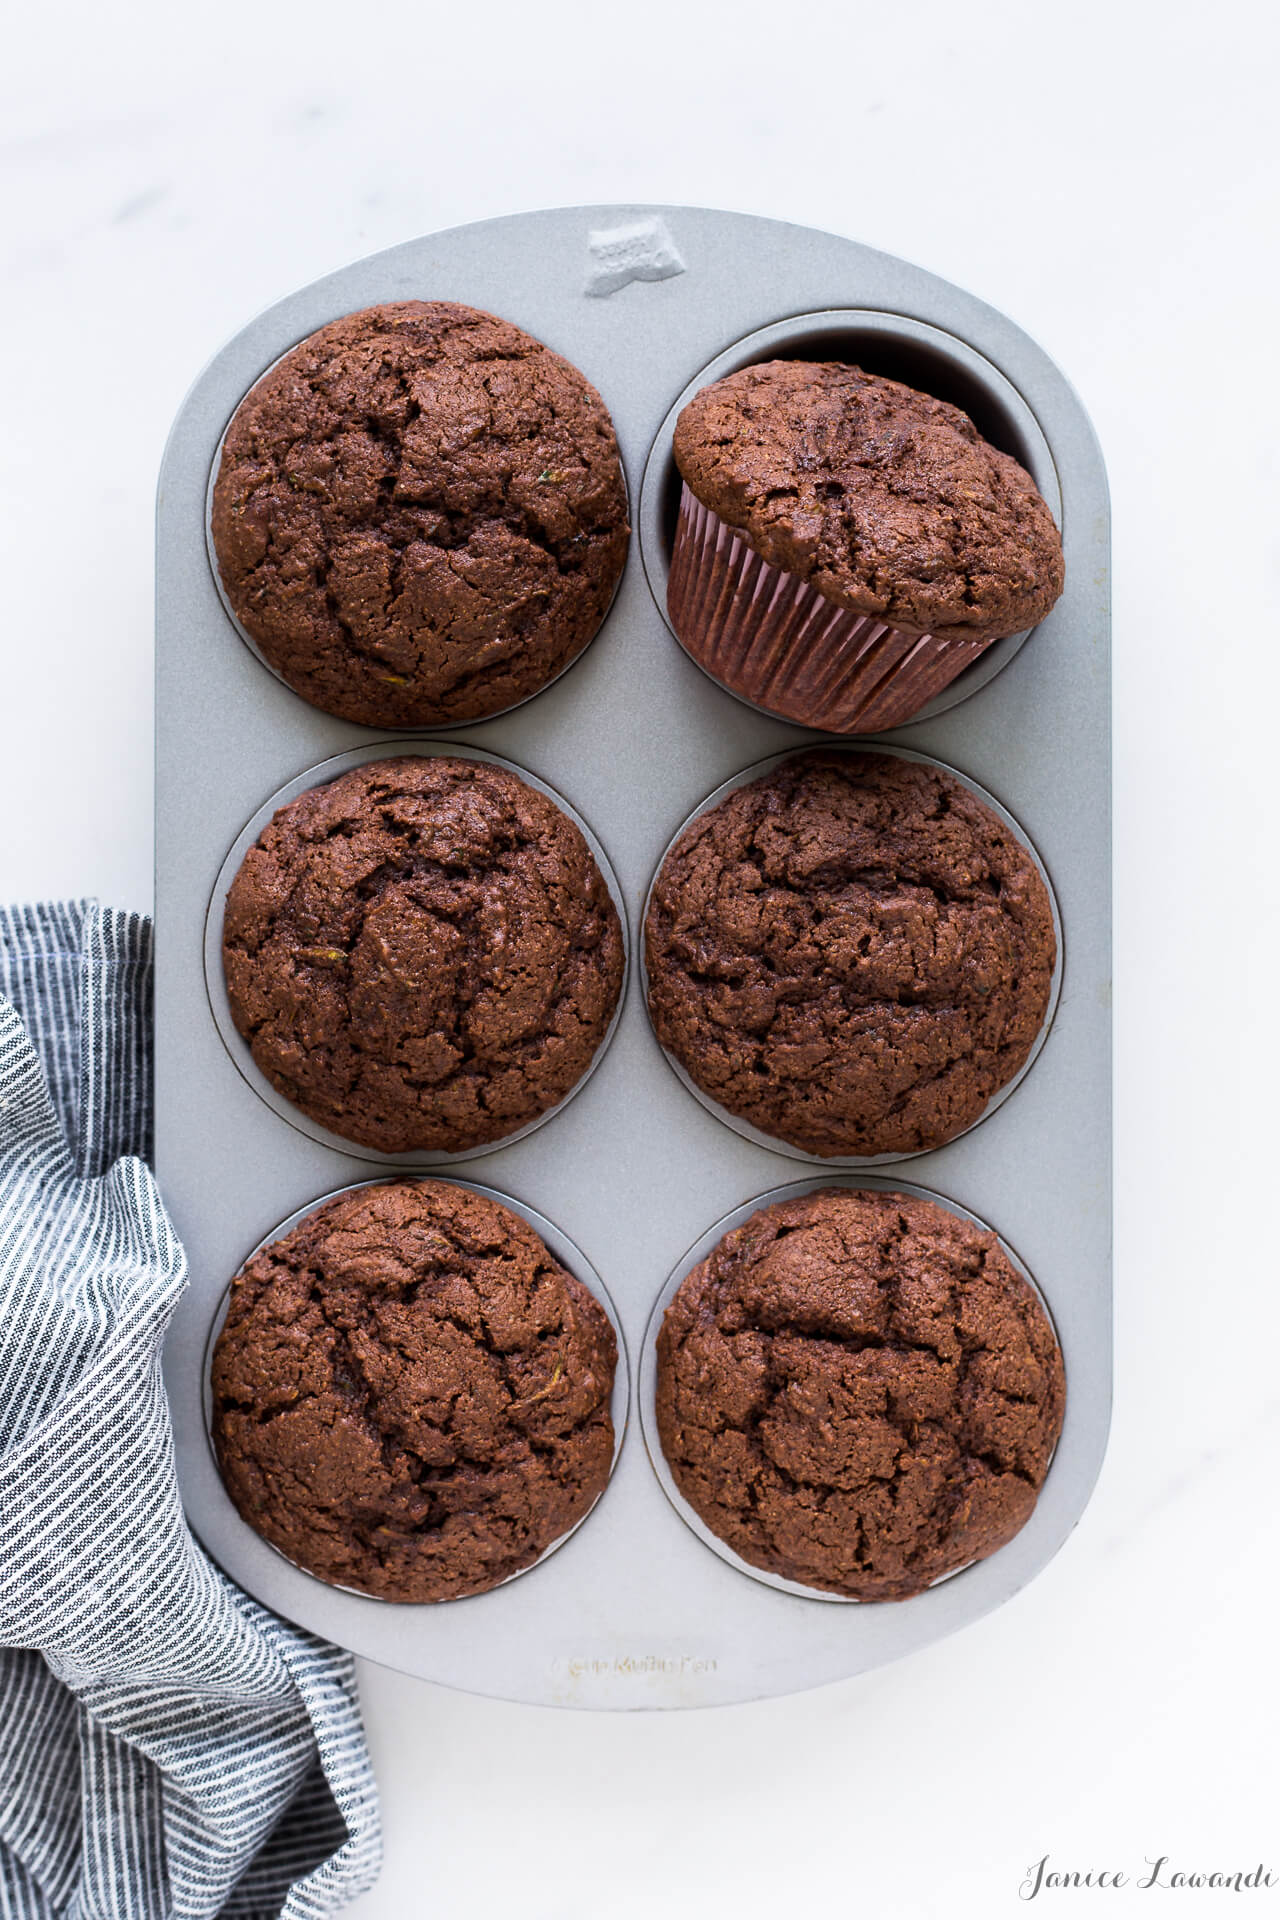 Zucchini chocolate muffins baked in a muffin pan with paper liners